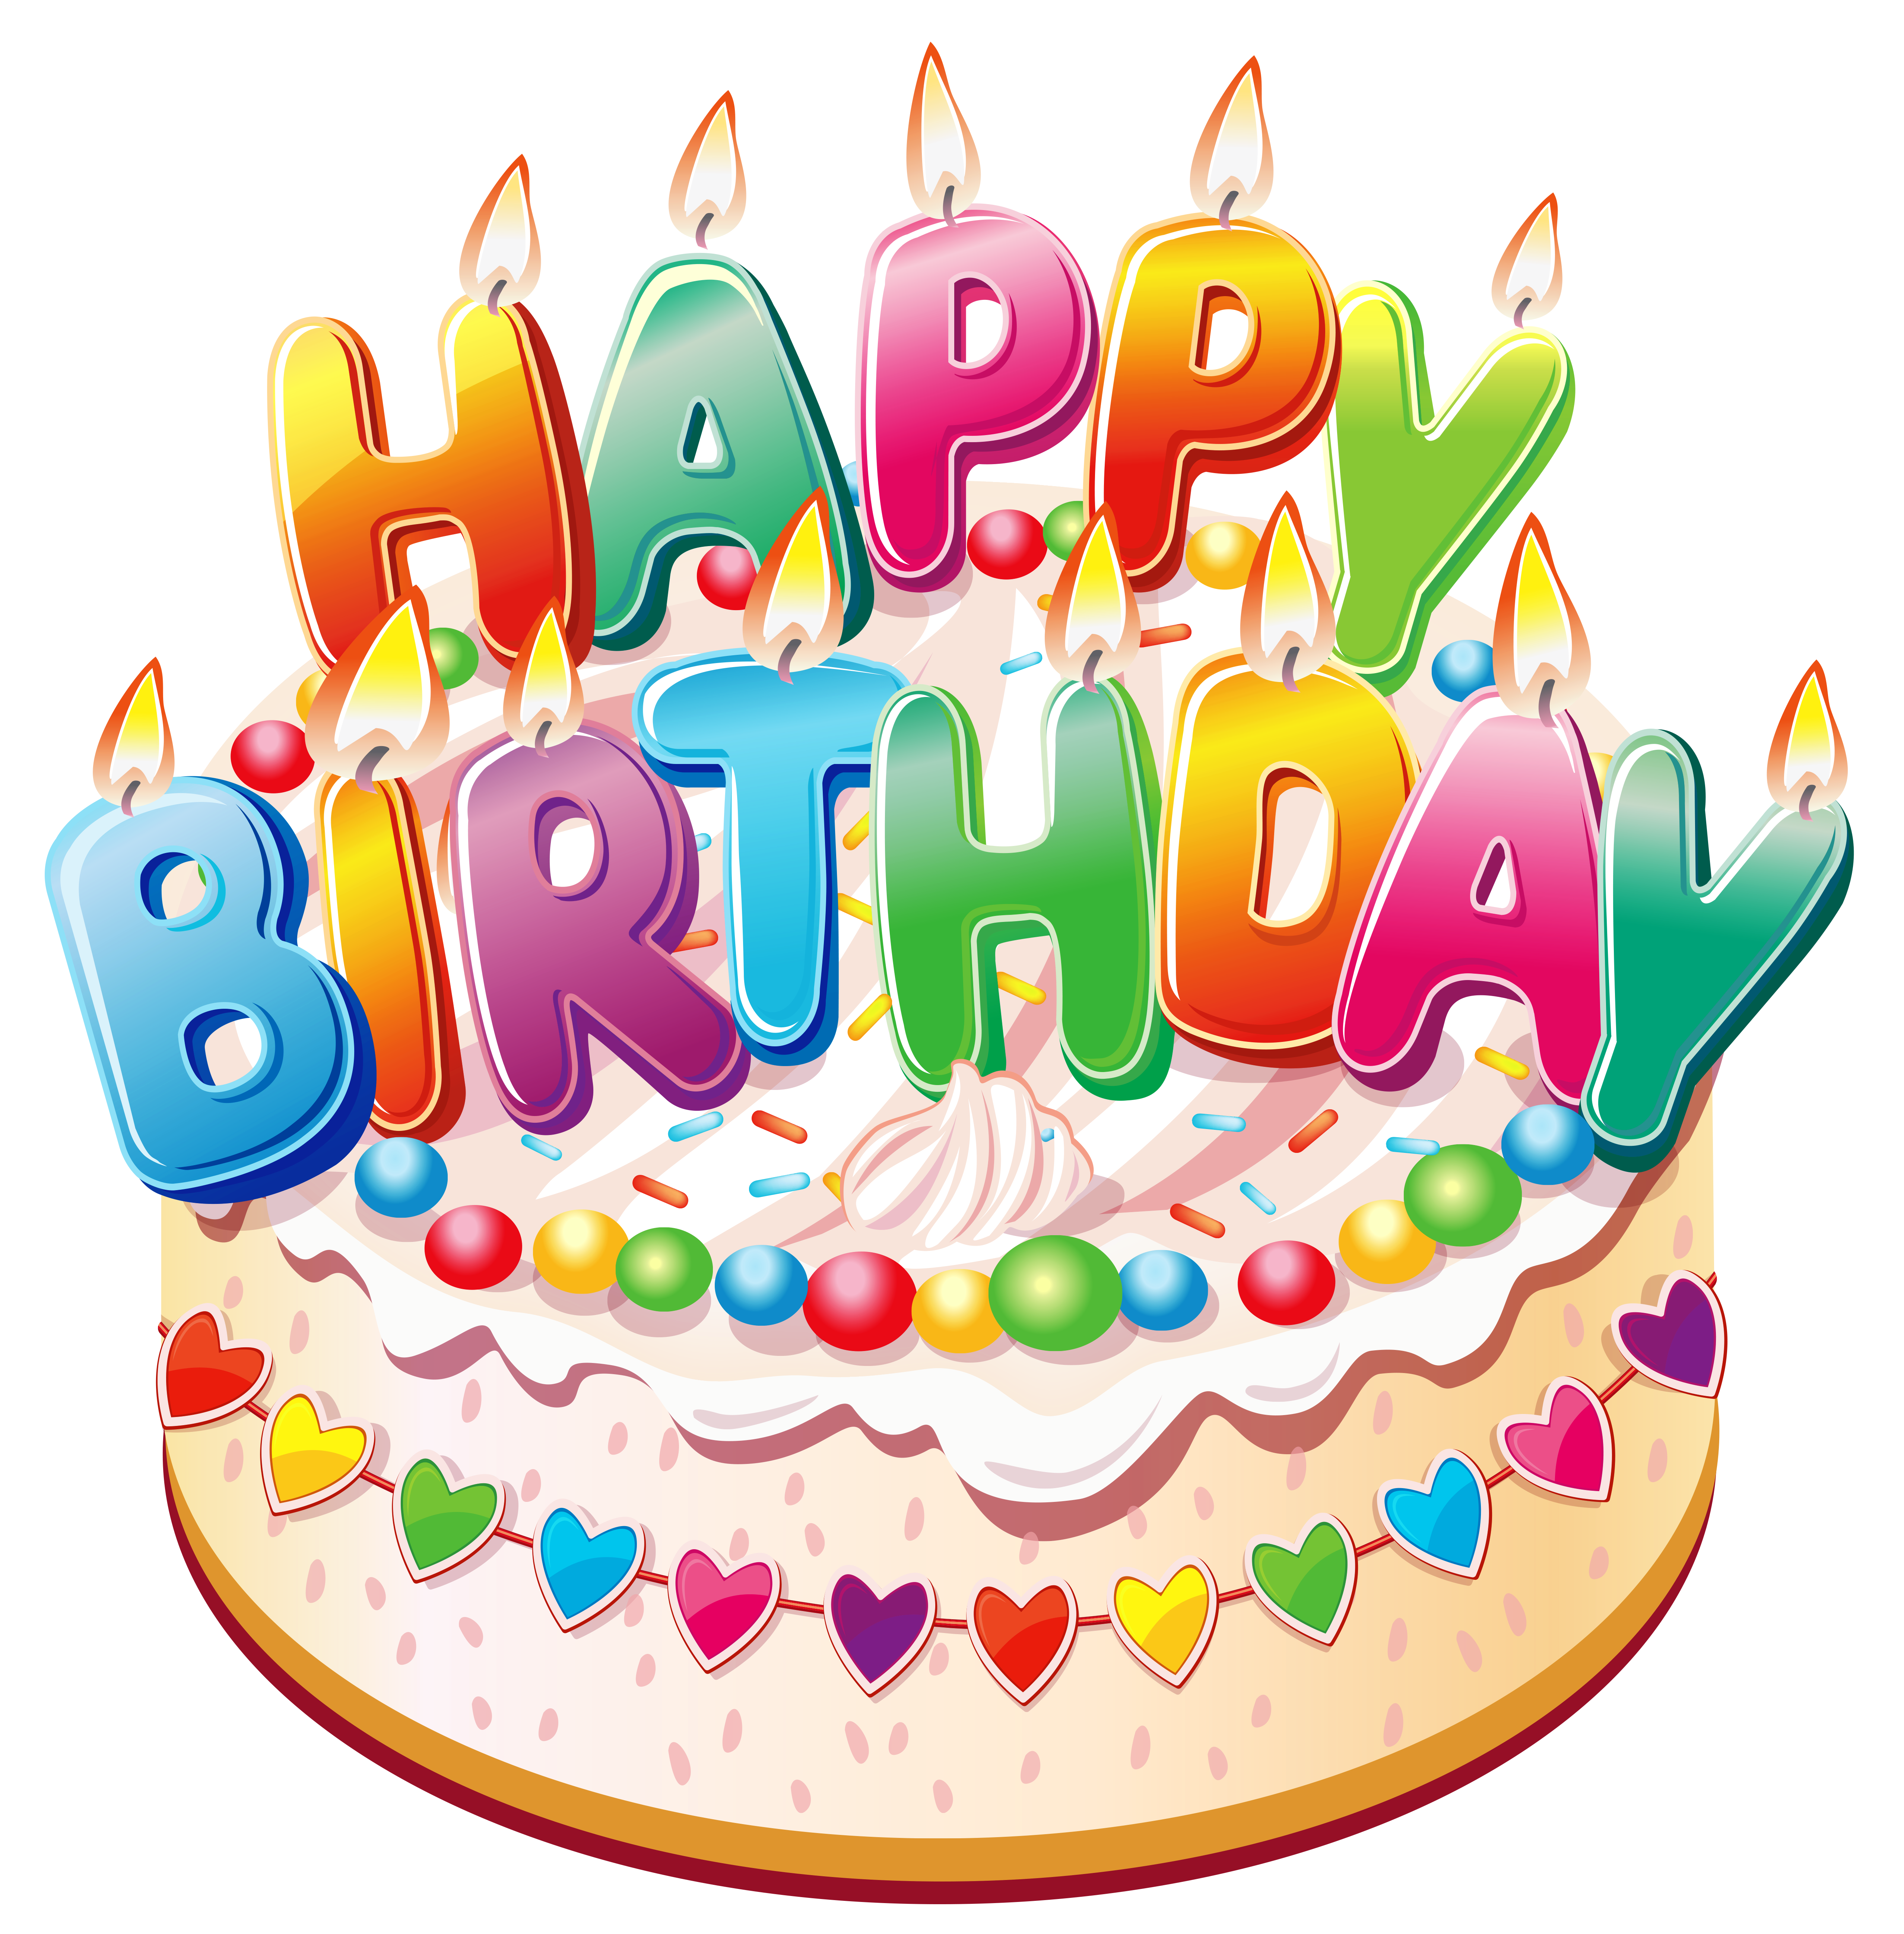 Clipart pictures of birthday .-Clipart pictures of birthday .-0